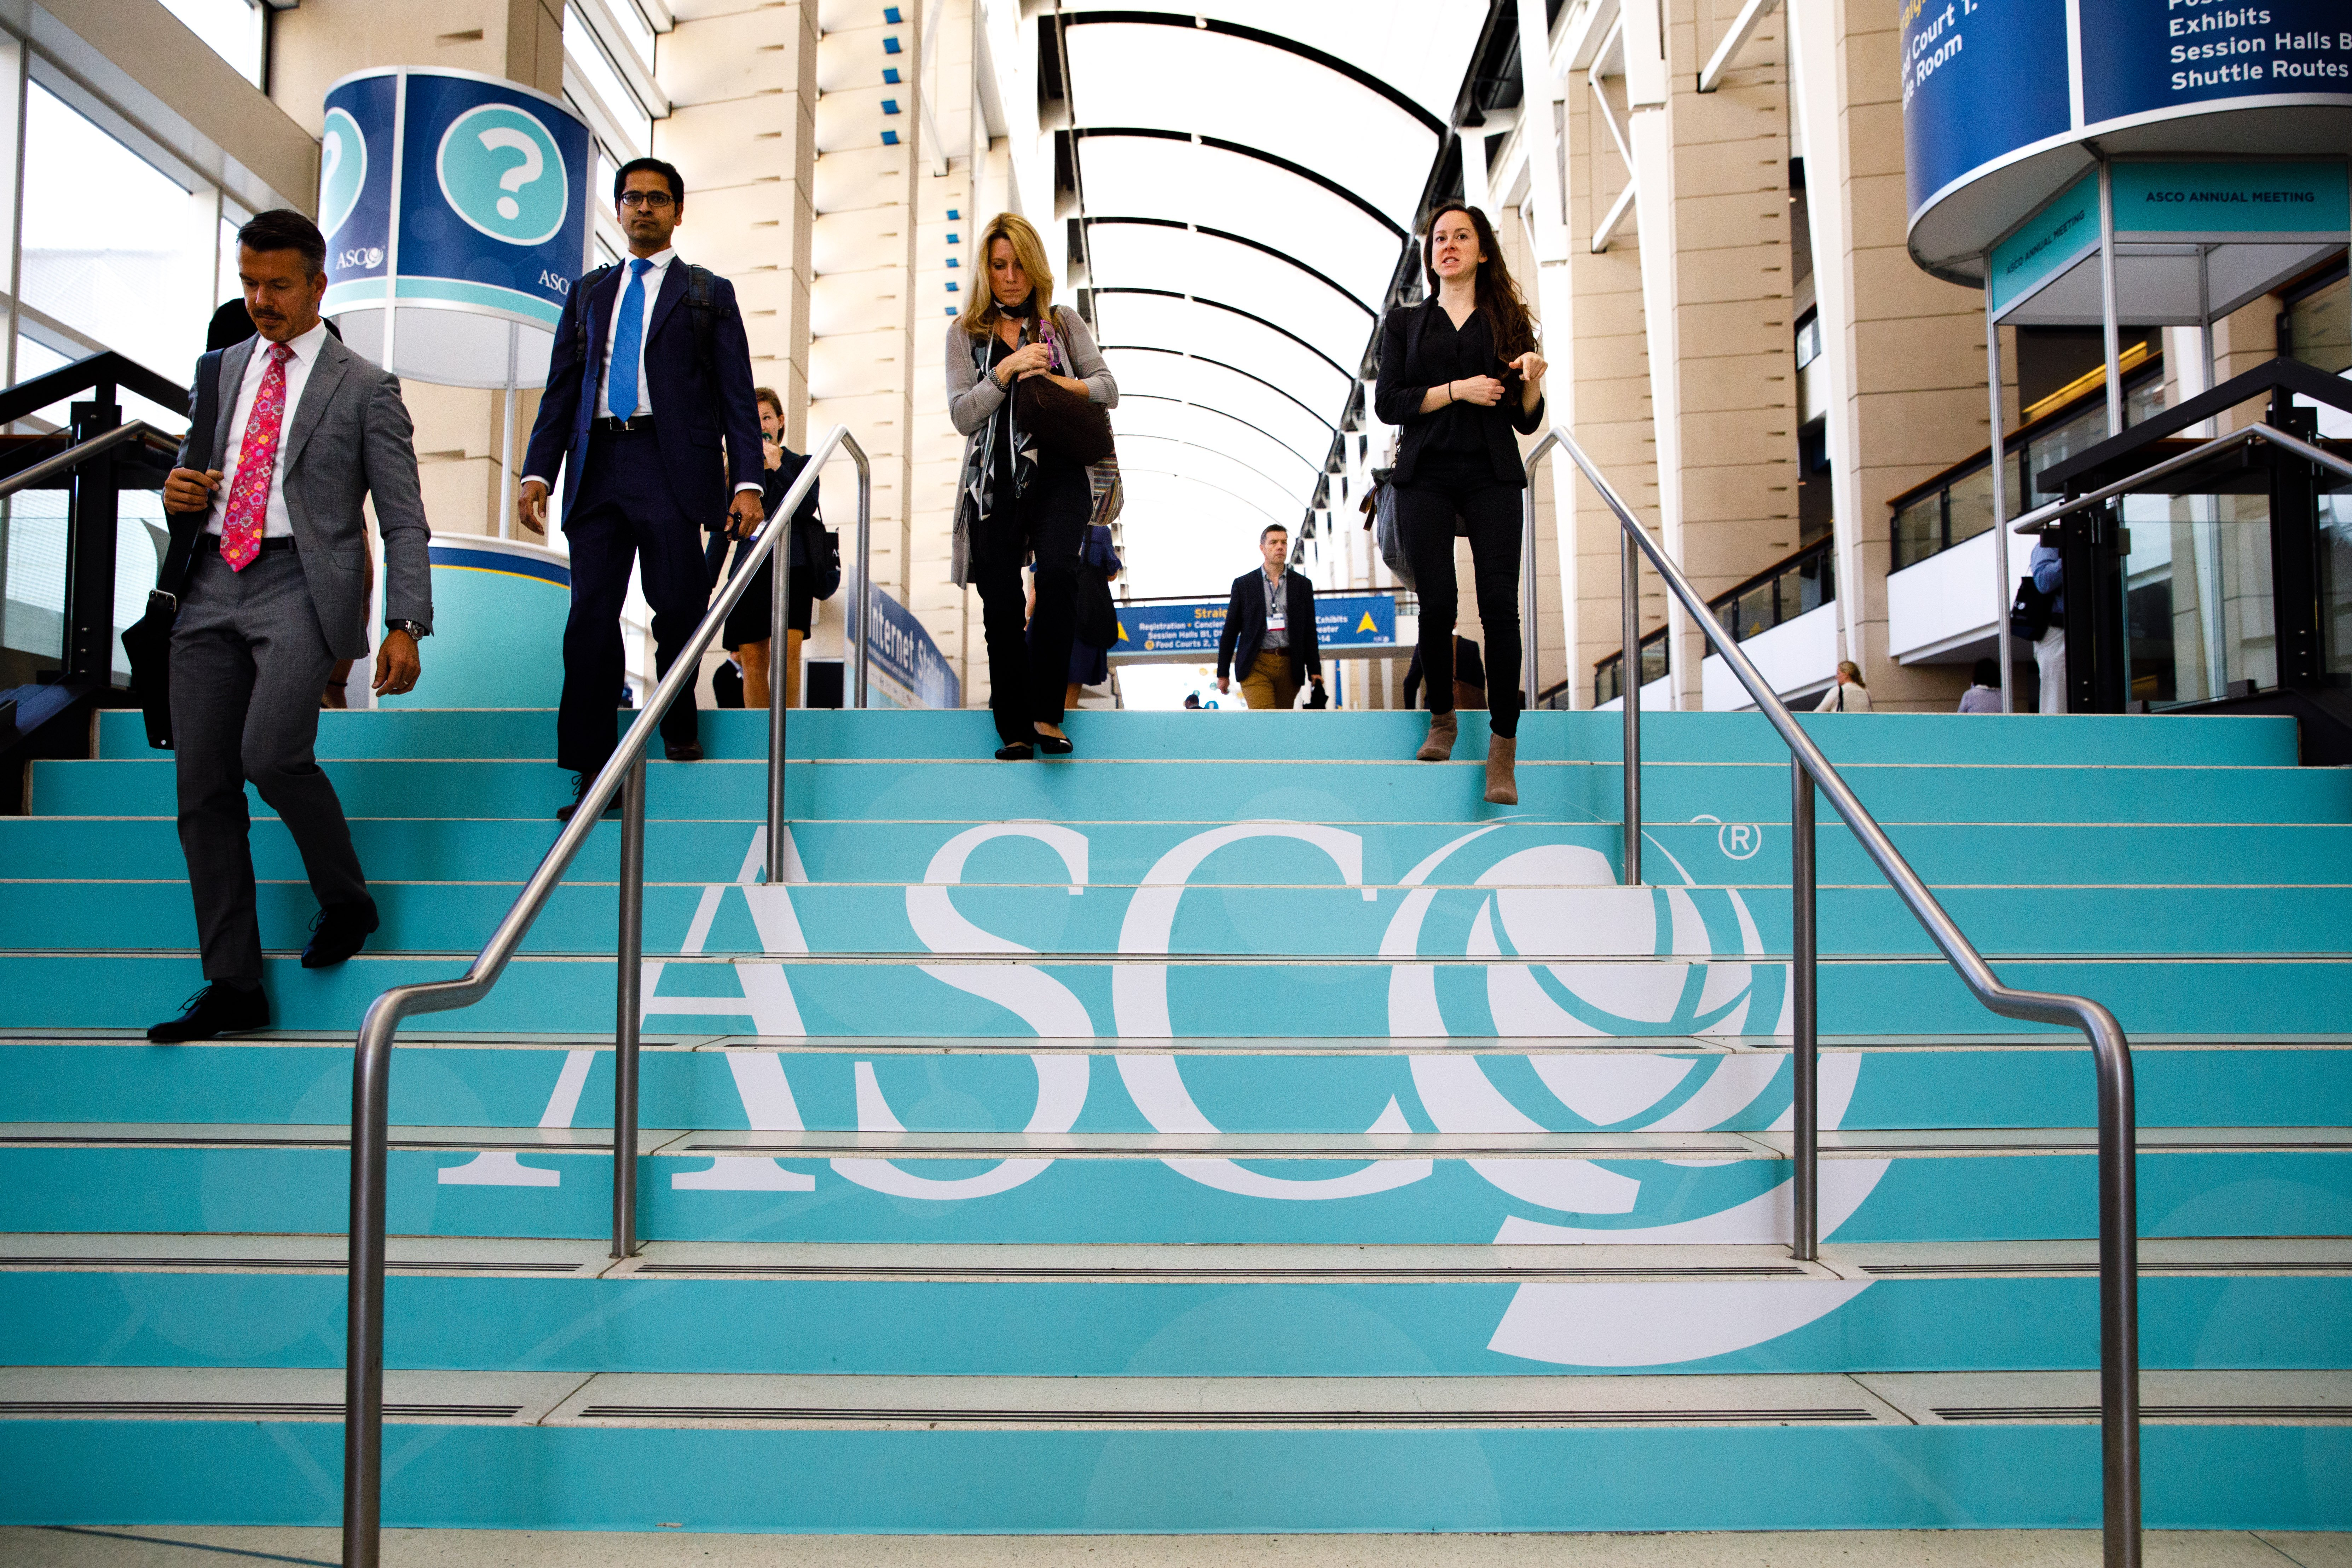 Attendees during the day at the American Society of Clinical Oncology (ASCO) Courtesy: © ASCO/Scott Morgan.